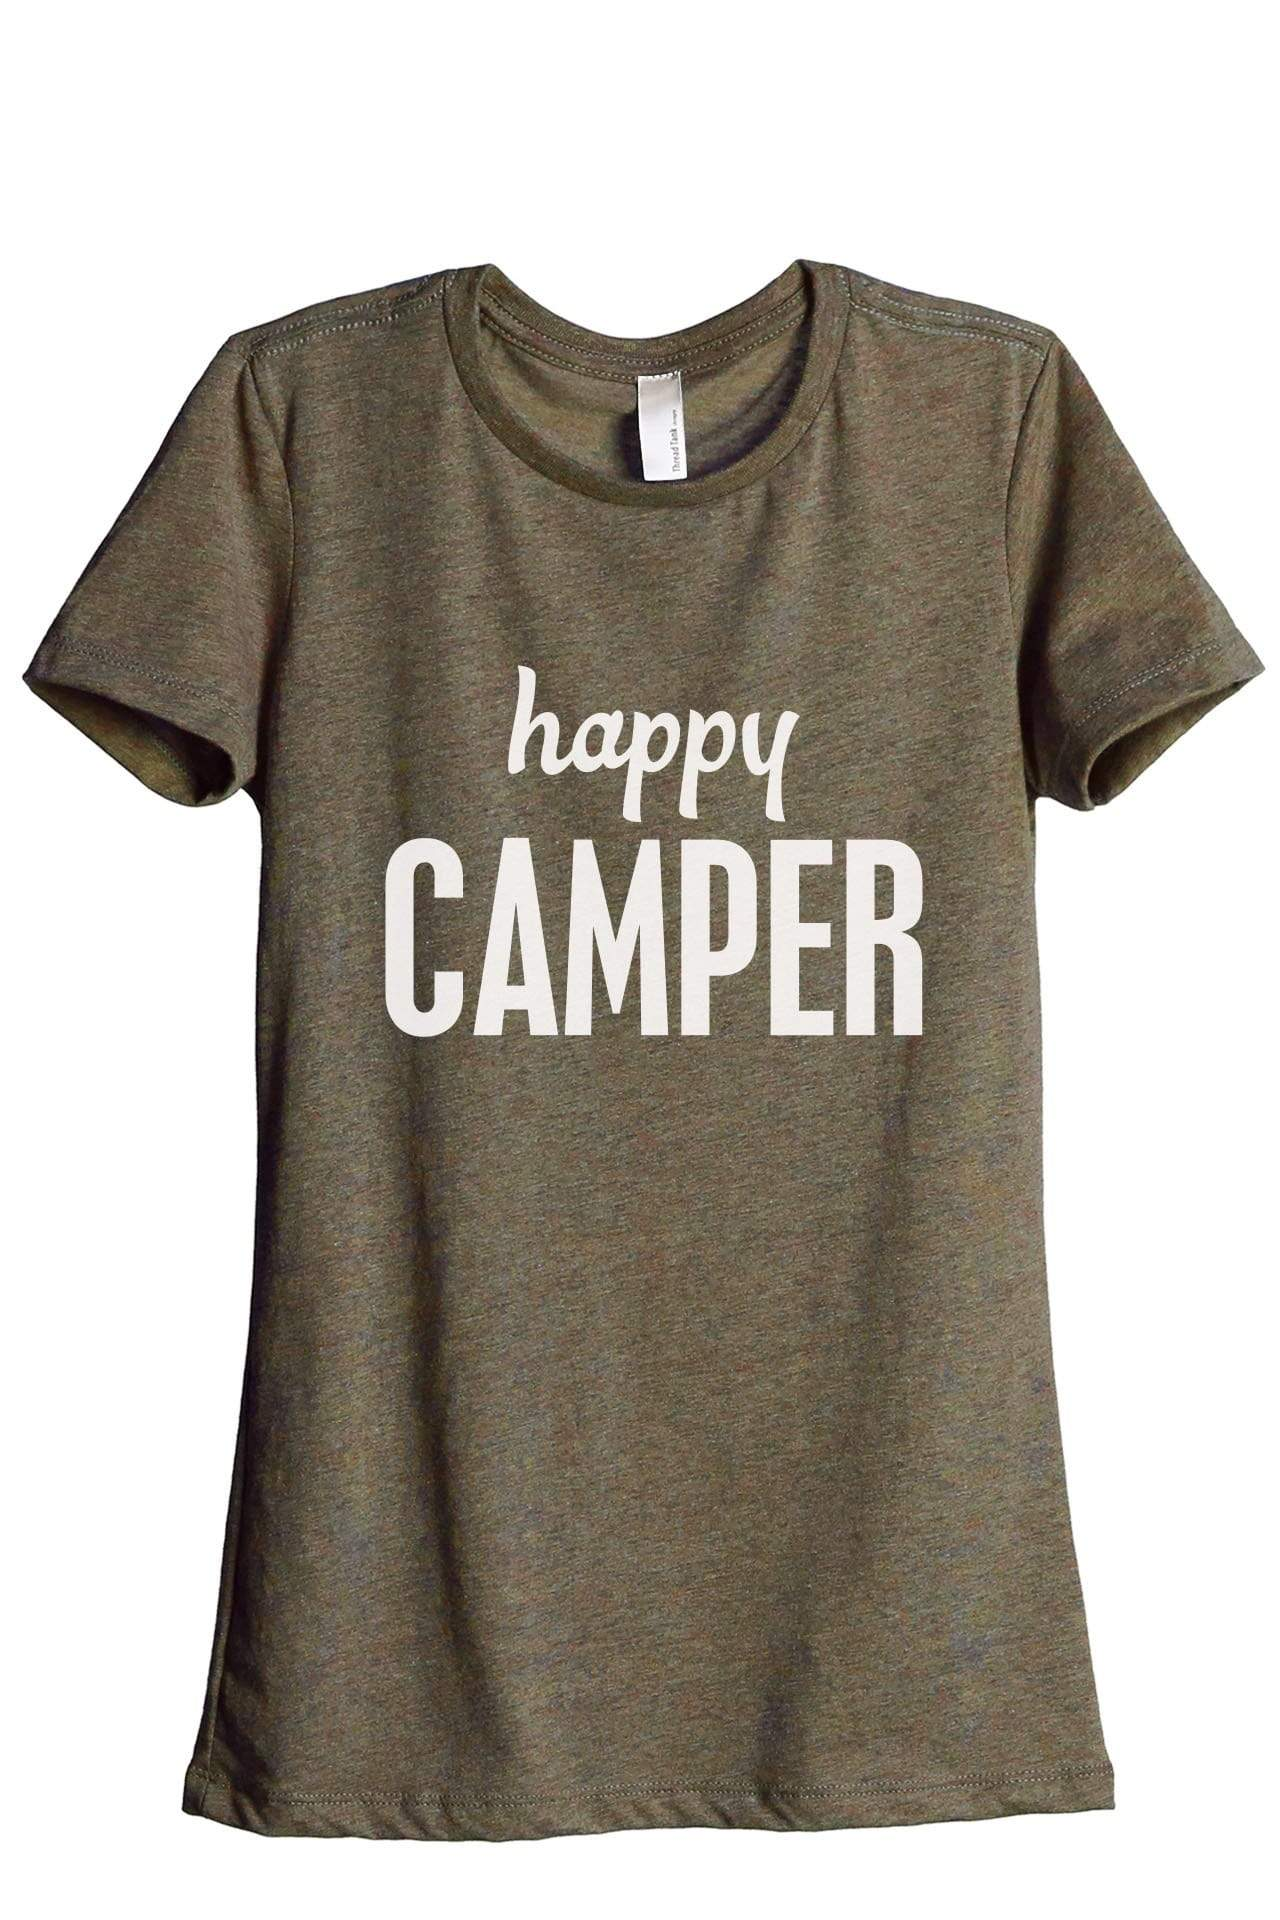 Happy Camper Women's Relaxed Crewneck T-Shirt Top Tee Heather Sage